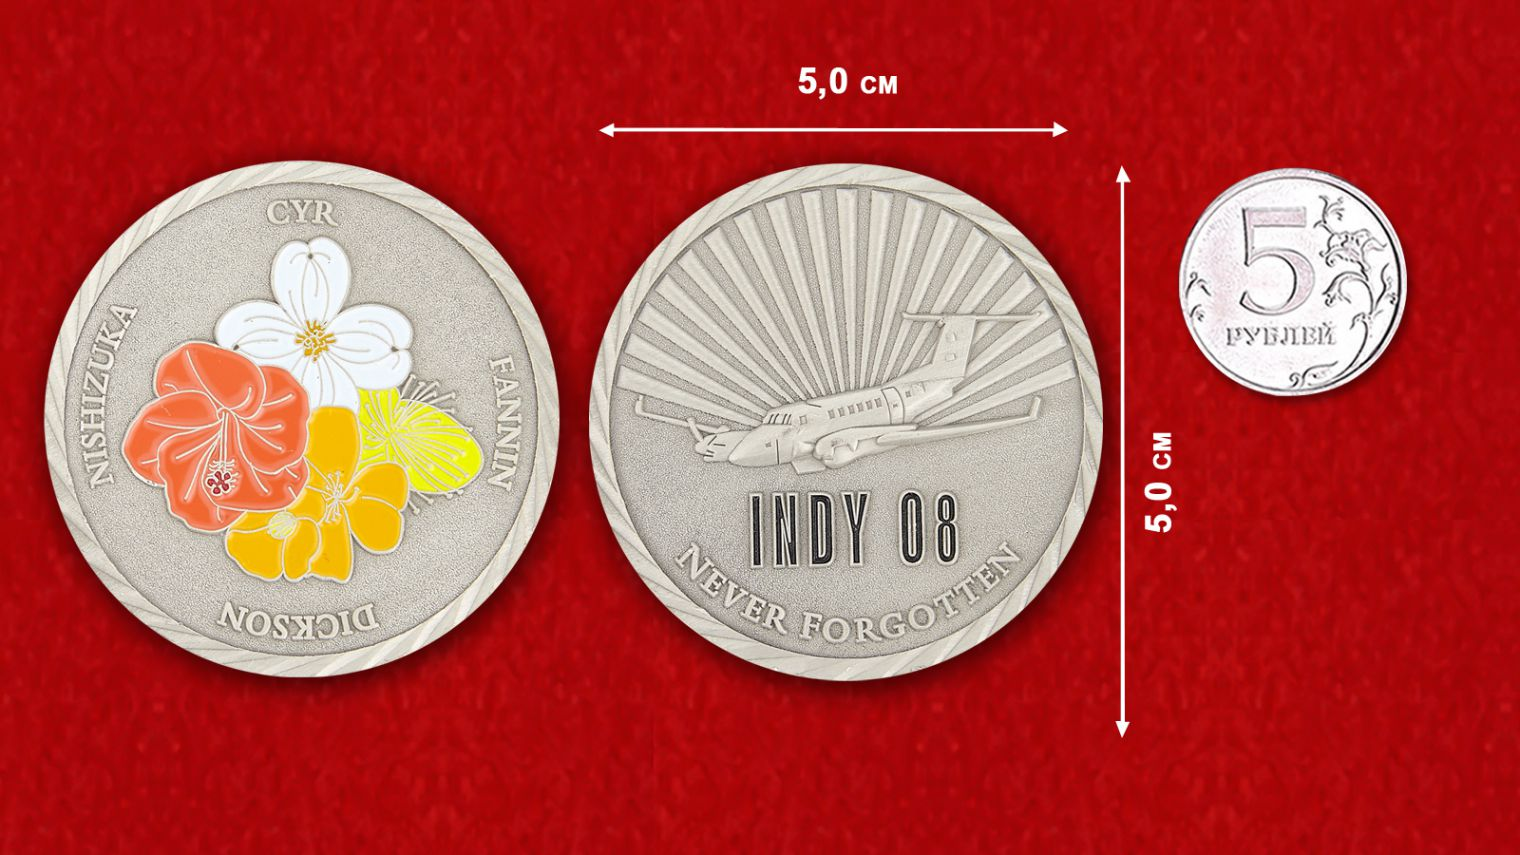 Memory Сrew INDY 08 Challenge Coin - comparative size